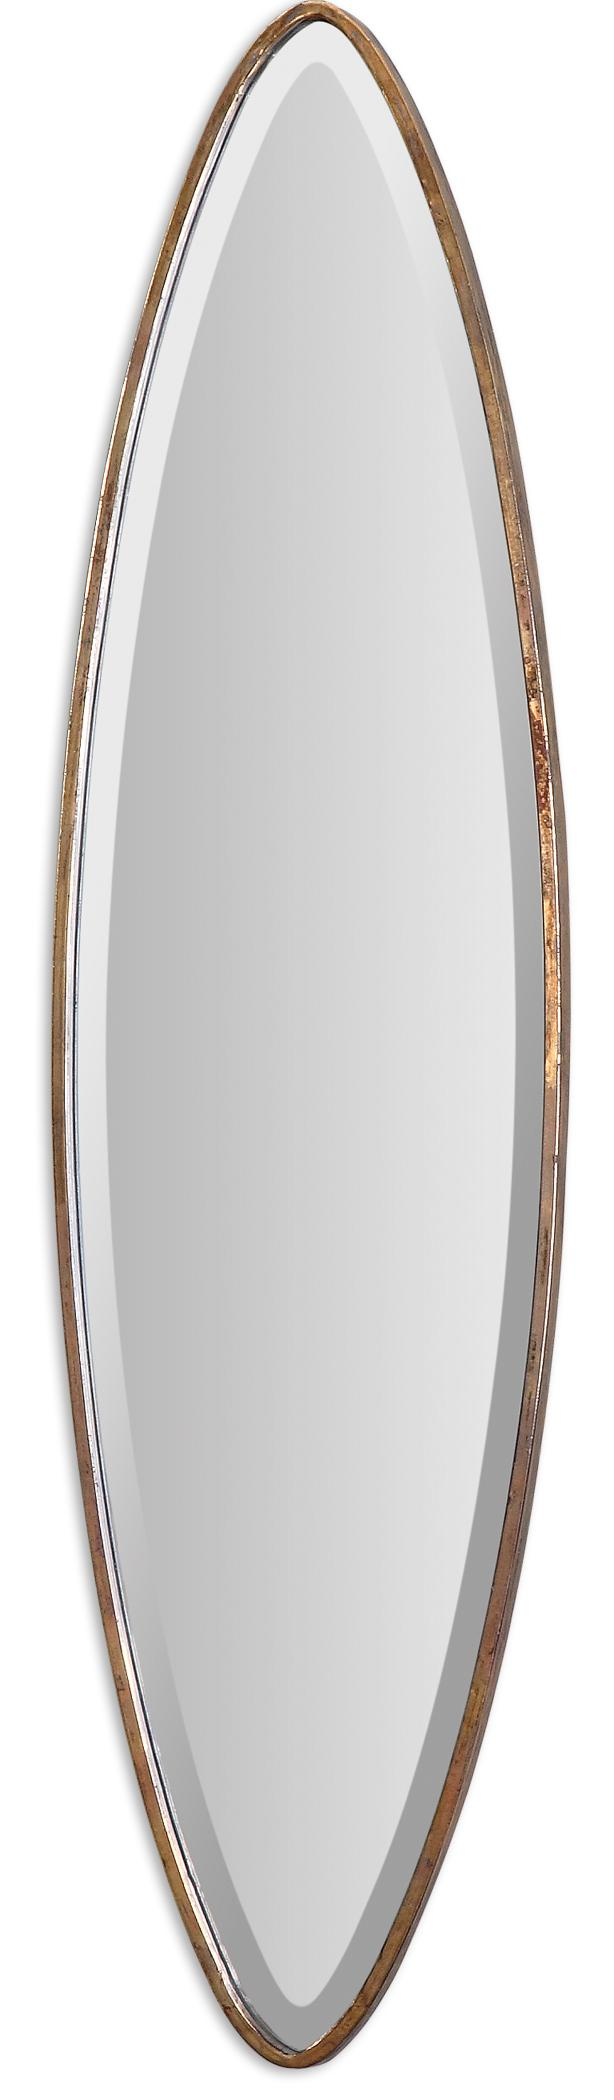 Uttermost Mirrors Ovar Gold Mirror - Item Number: 12860